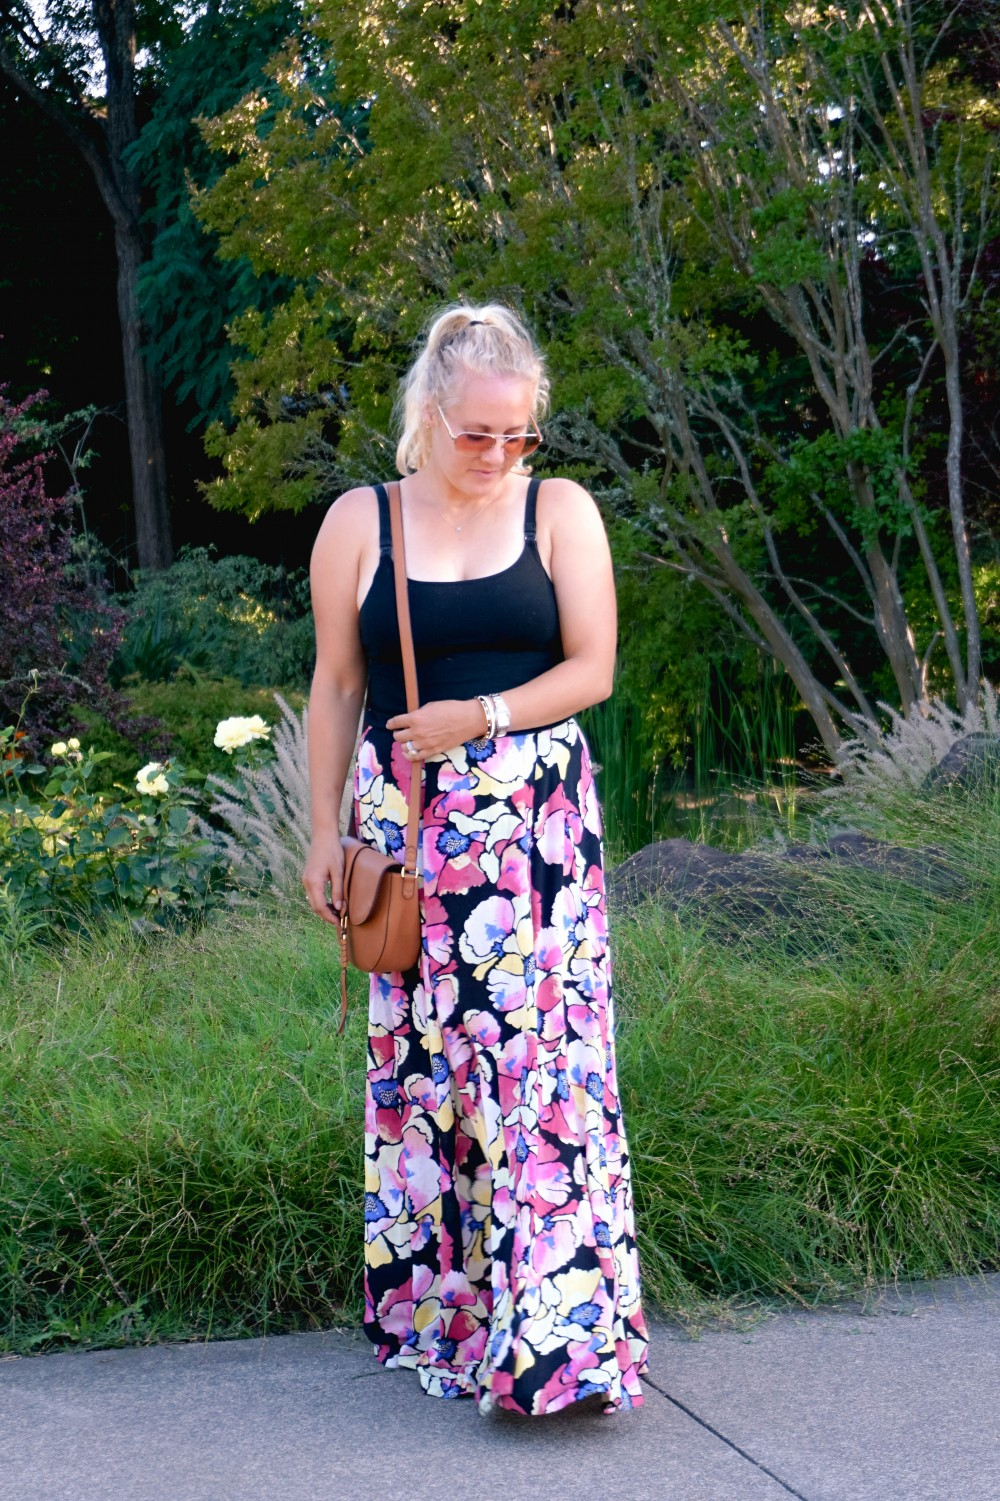 Hot Tropics Floral Maxi Skirt-Free People Floral Maxi Skirt-Outfit Inspiration-Wine Country-Mom Style-Nursing Top-Have Need Want 2